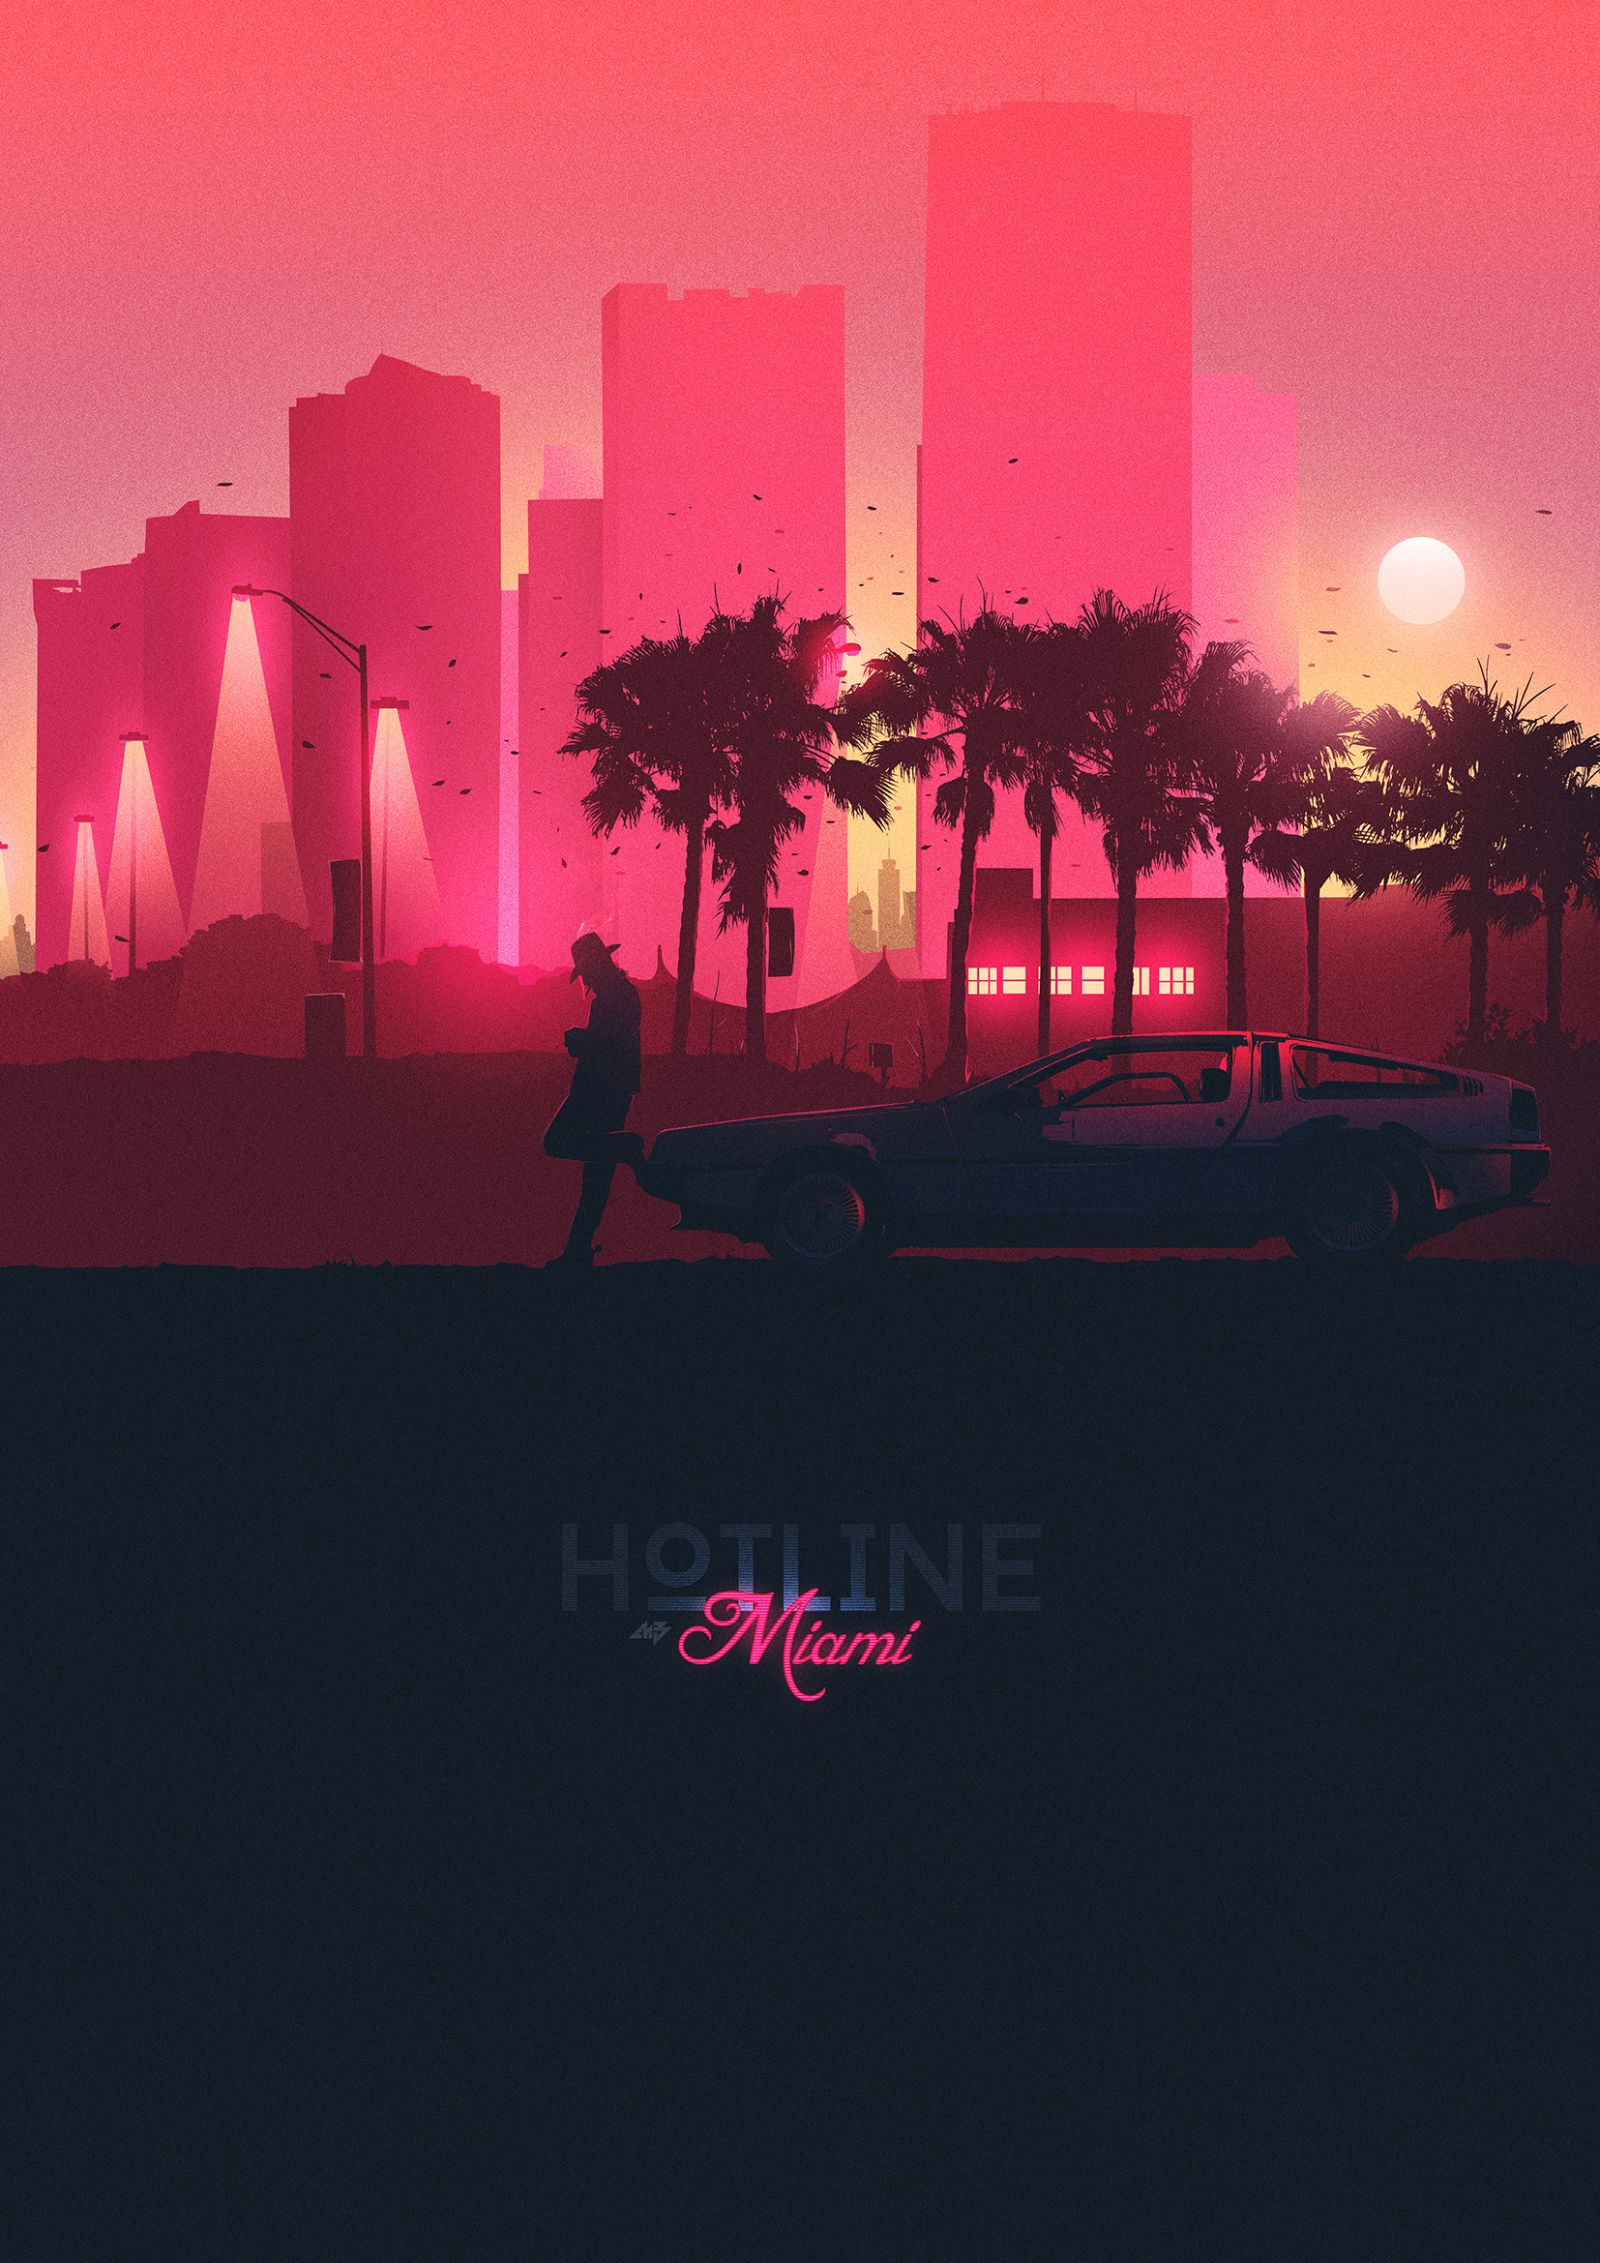 Fast 7 Car Wallpapers Hotline Miami Stuff Amp Thangs 80s Design Graphic